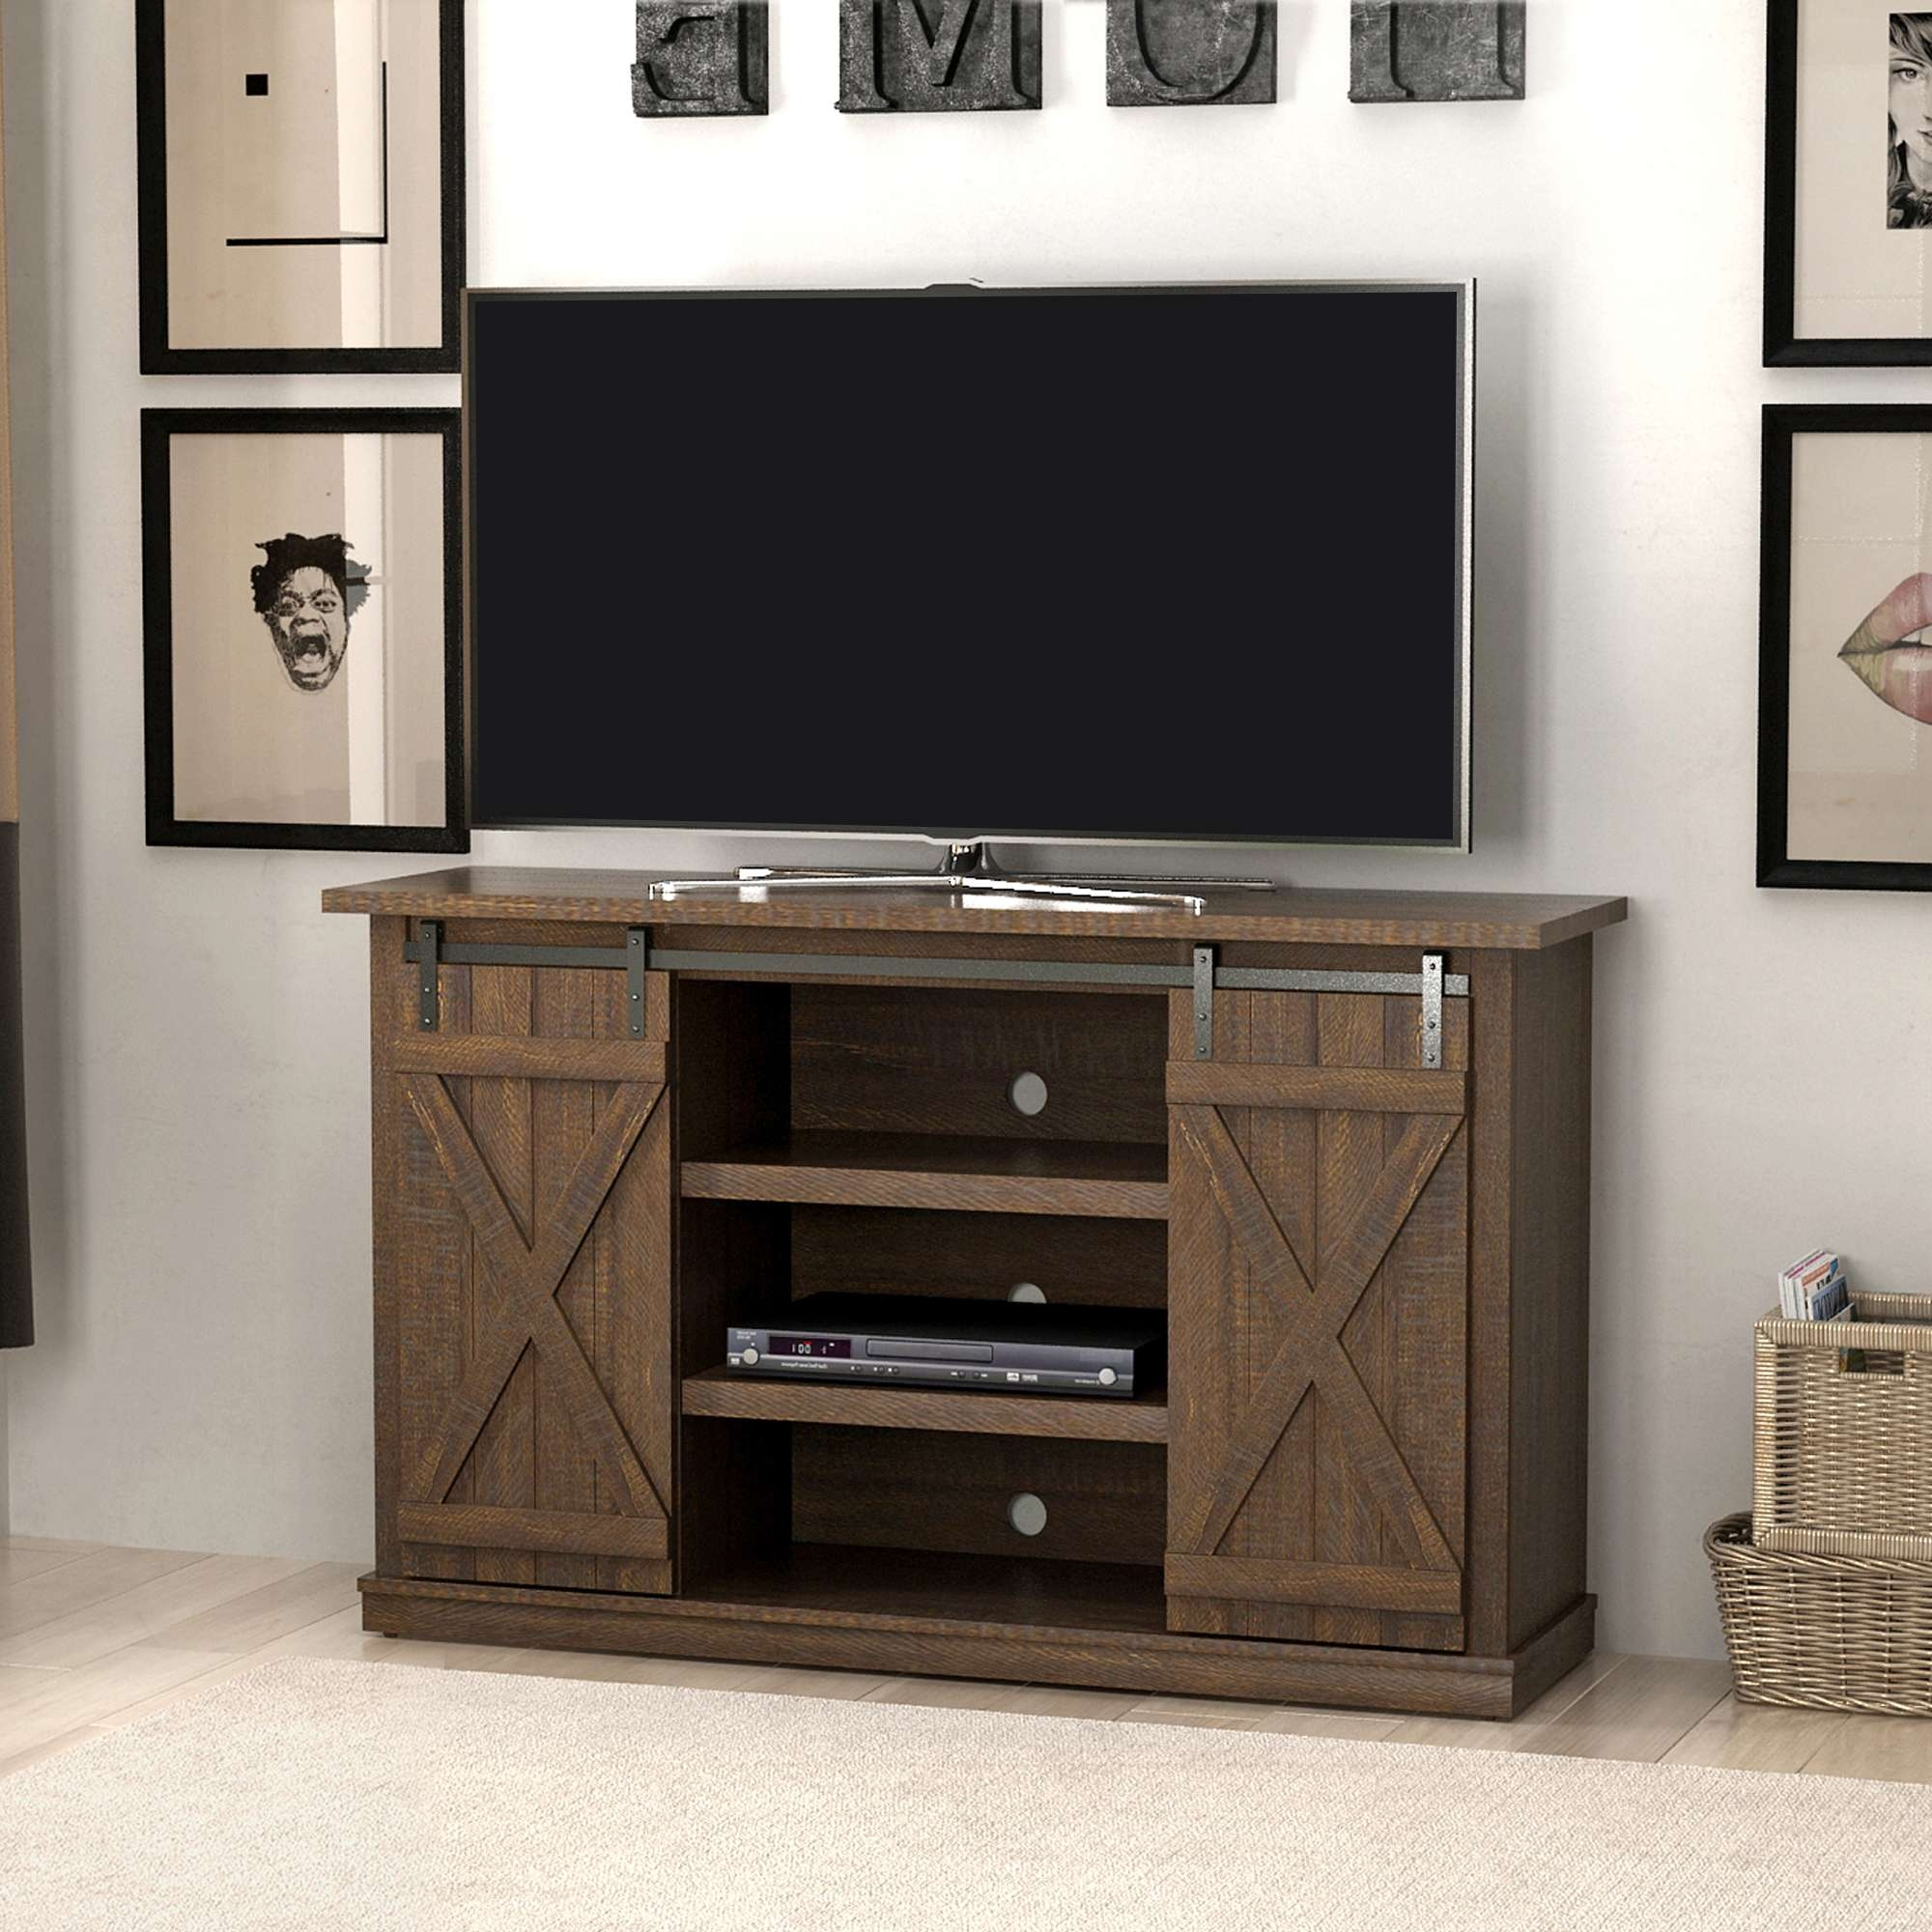 Tv Stands – Walmart In Maple Wood Tv Stands (View 11 of 15)